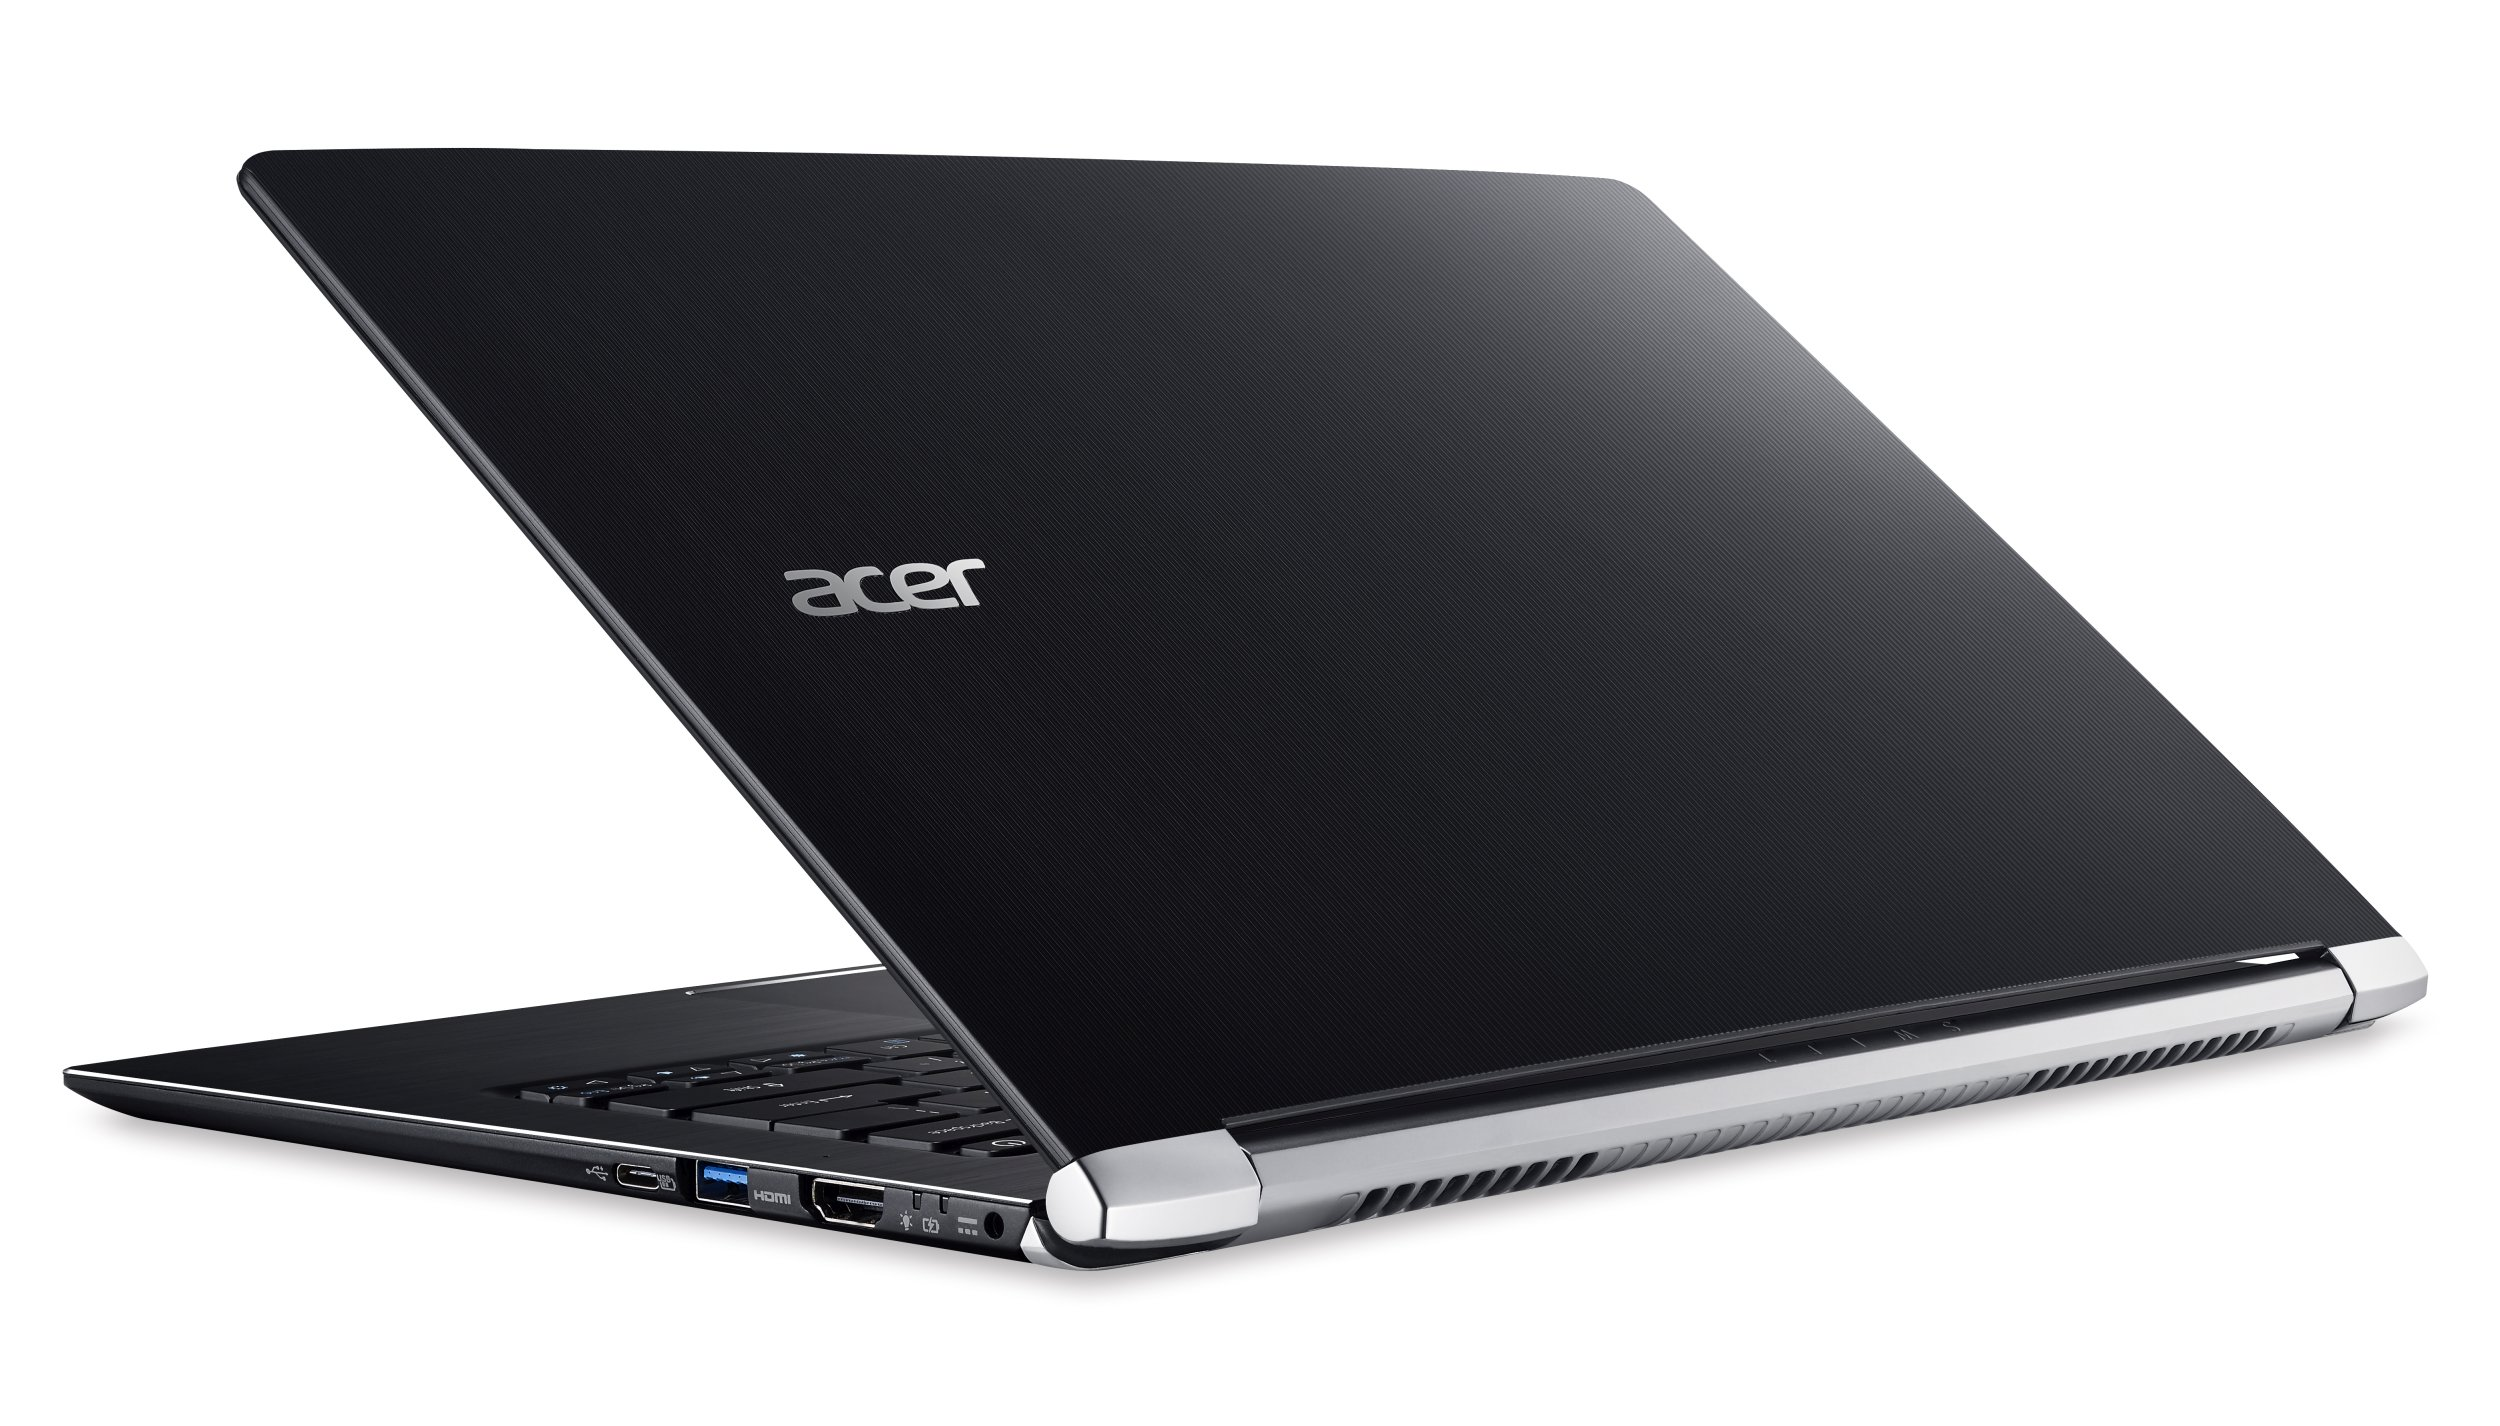 "Acer Swift 5 (SF514-51-773S) i7-7500U/8 GB+N/512GB PCIe SSD M.2+N/A/HD Graphics /14"" FHD lesklý IPS/W10 Home/Black"